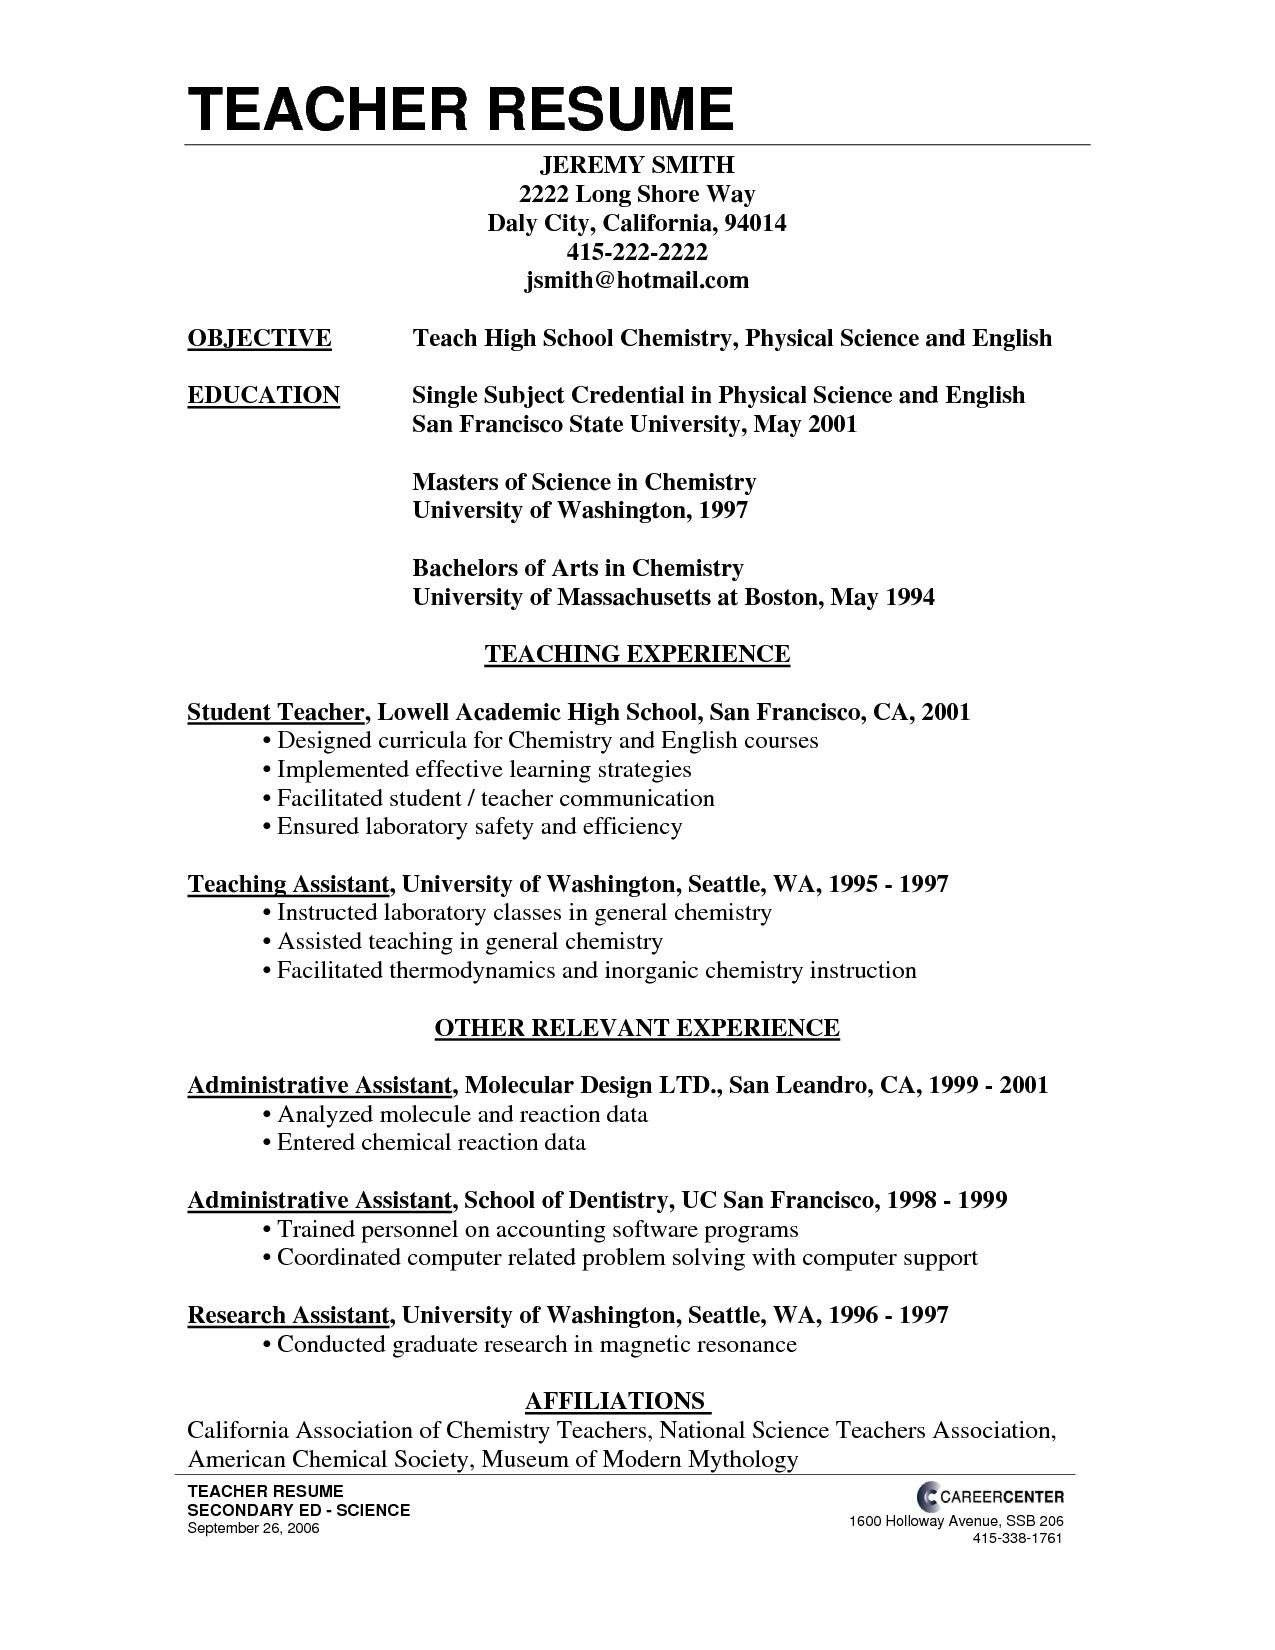 Military Experience On Resume - Military Experience Resume Beautiful Best Military Resume Example